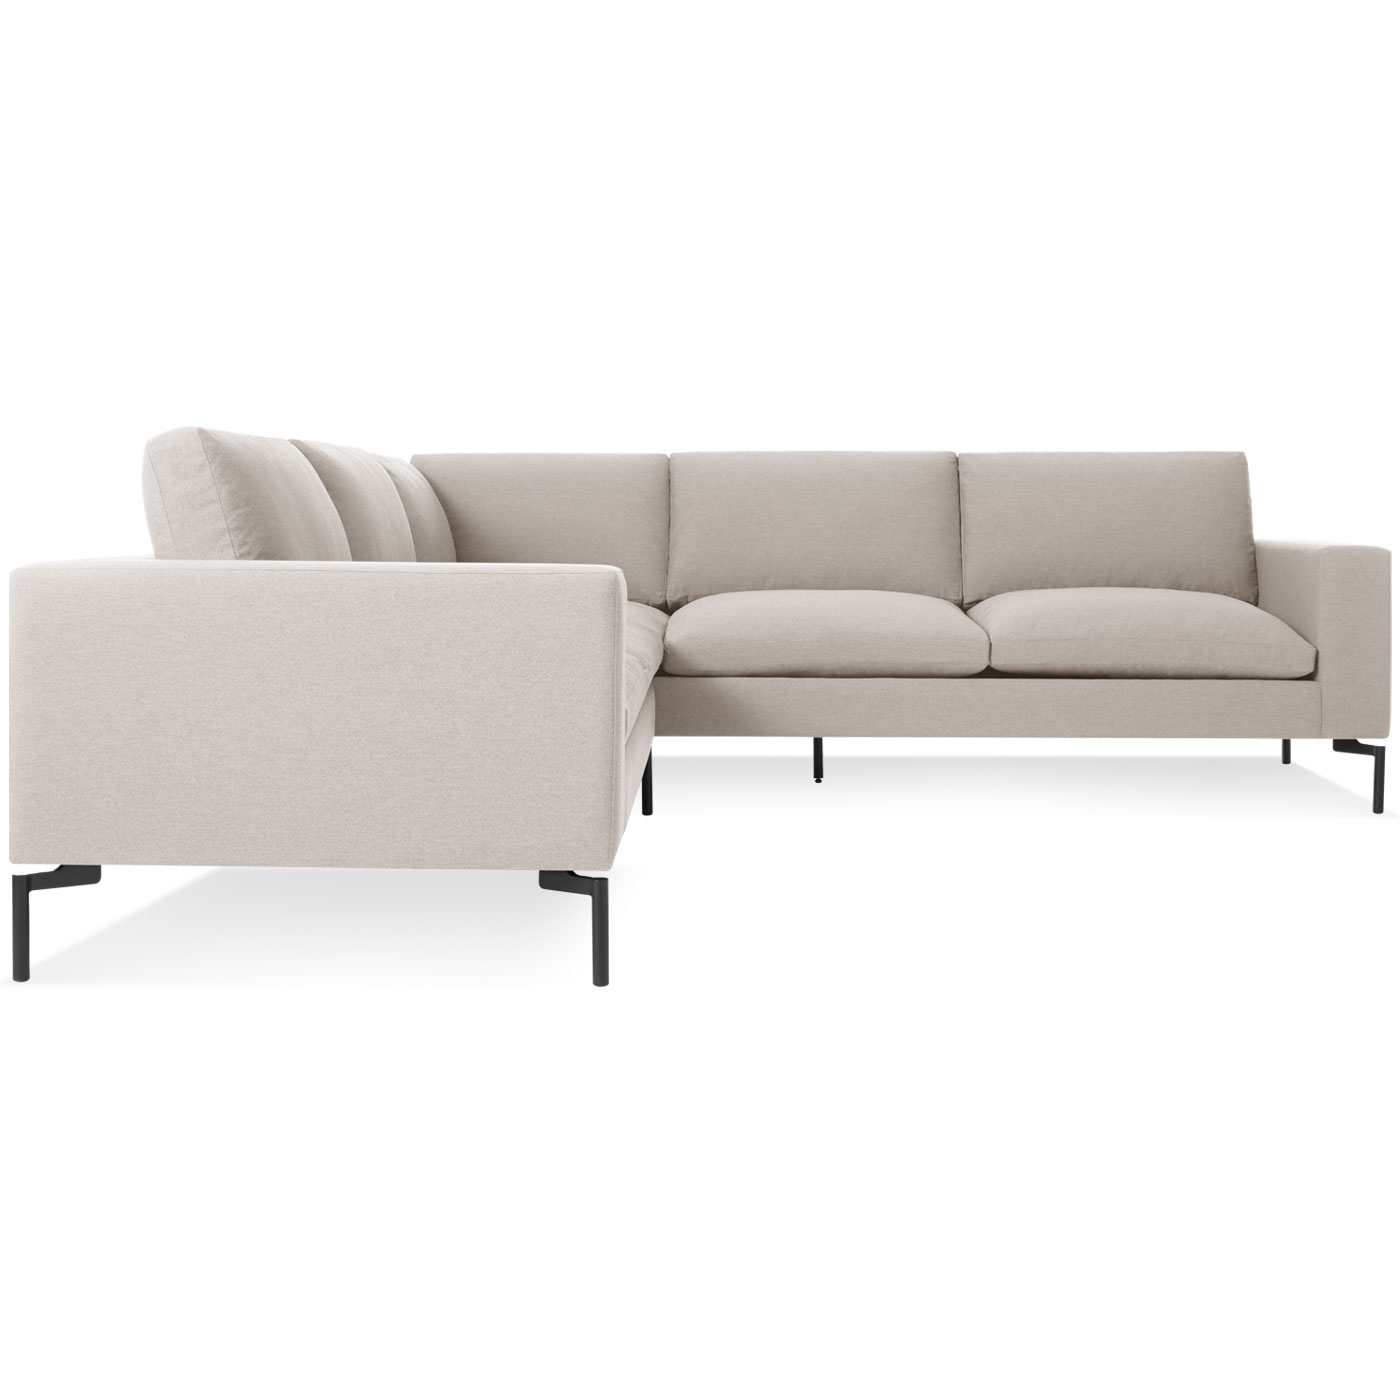 New Standard Small Sectional Sofa – Modern Sofas (View 13 of 15)